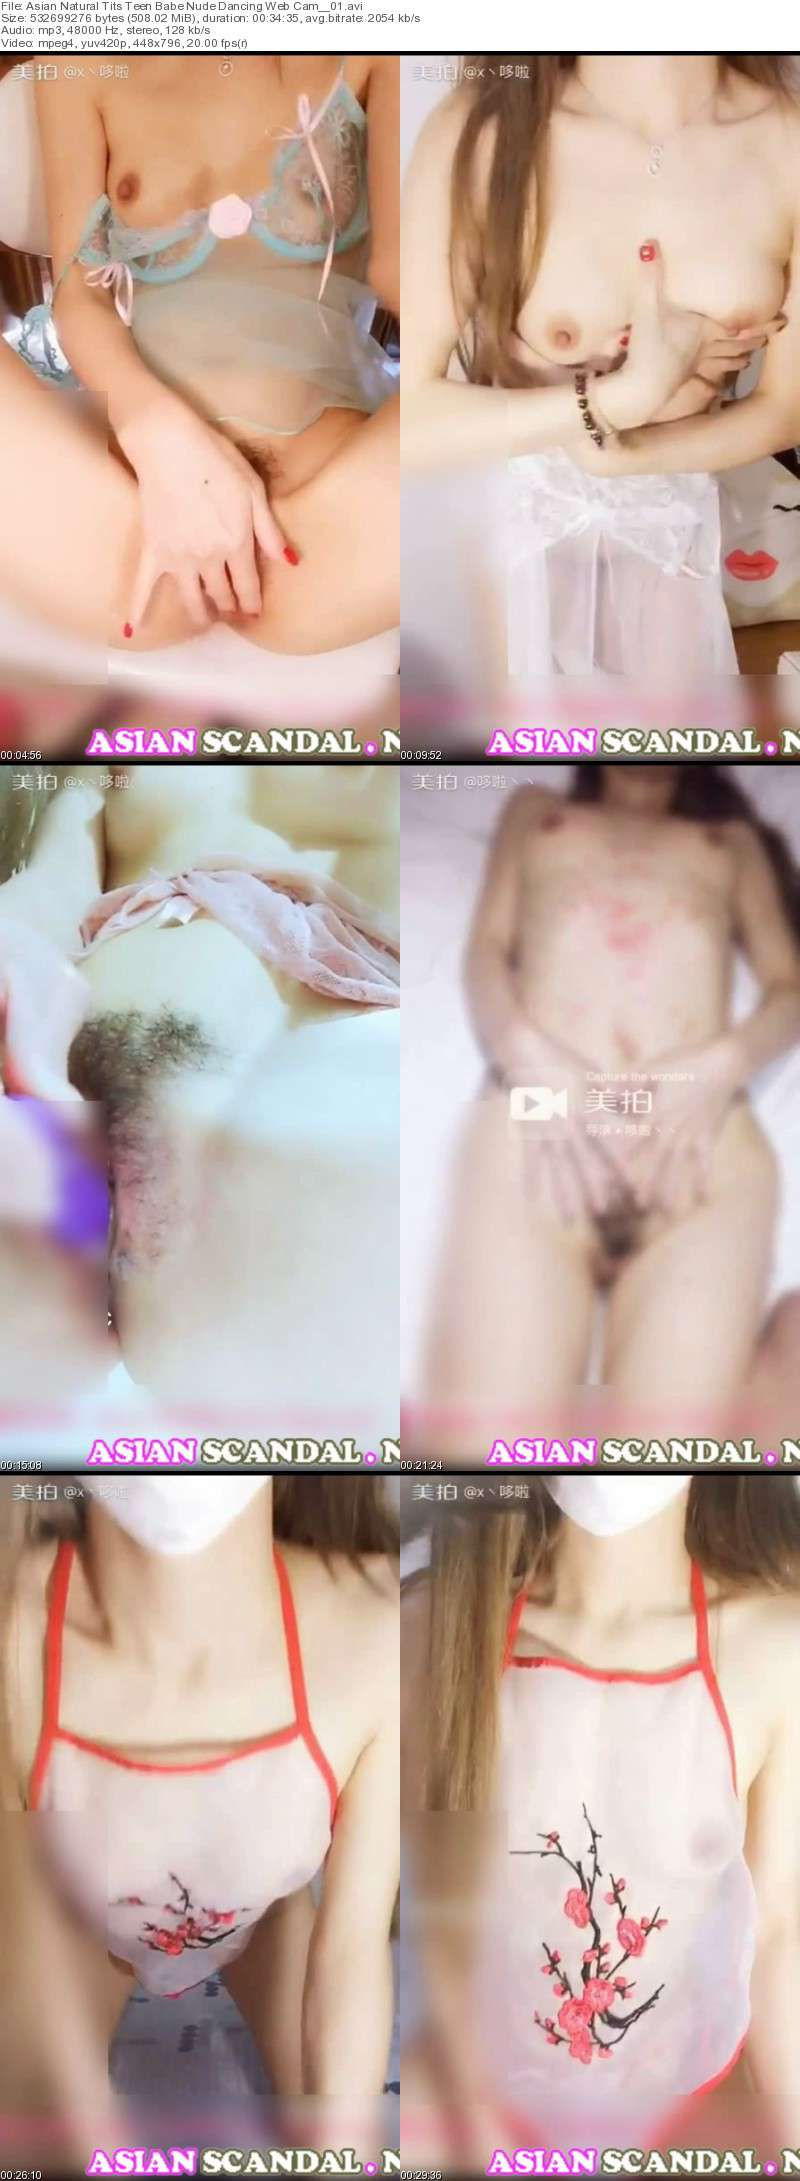 Chinese free porn videos